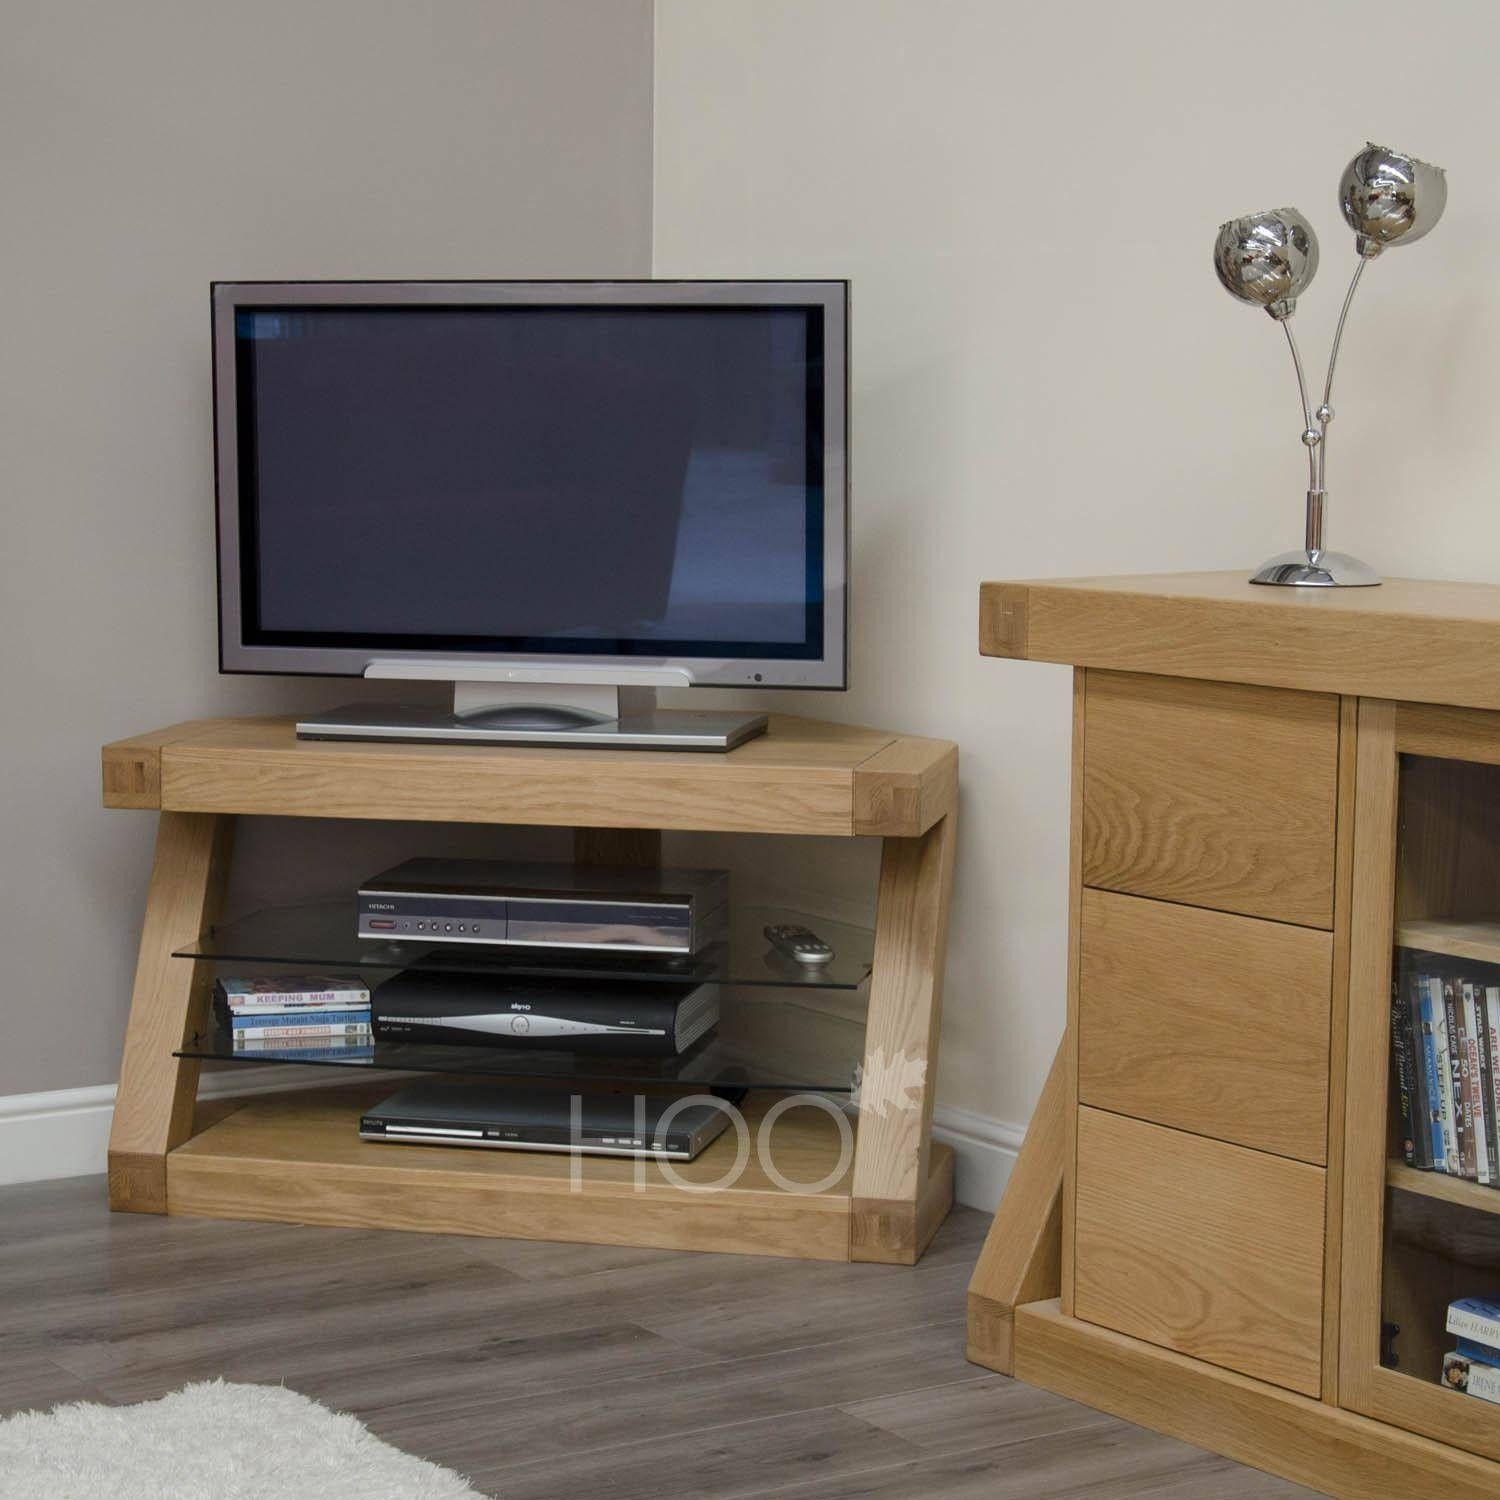 Tv Units - Oak Living Room Furniture - Oak Furniturehouse Of Oak with Small Oak Corner Tv Stands (Image 15 of 15)